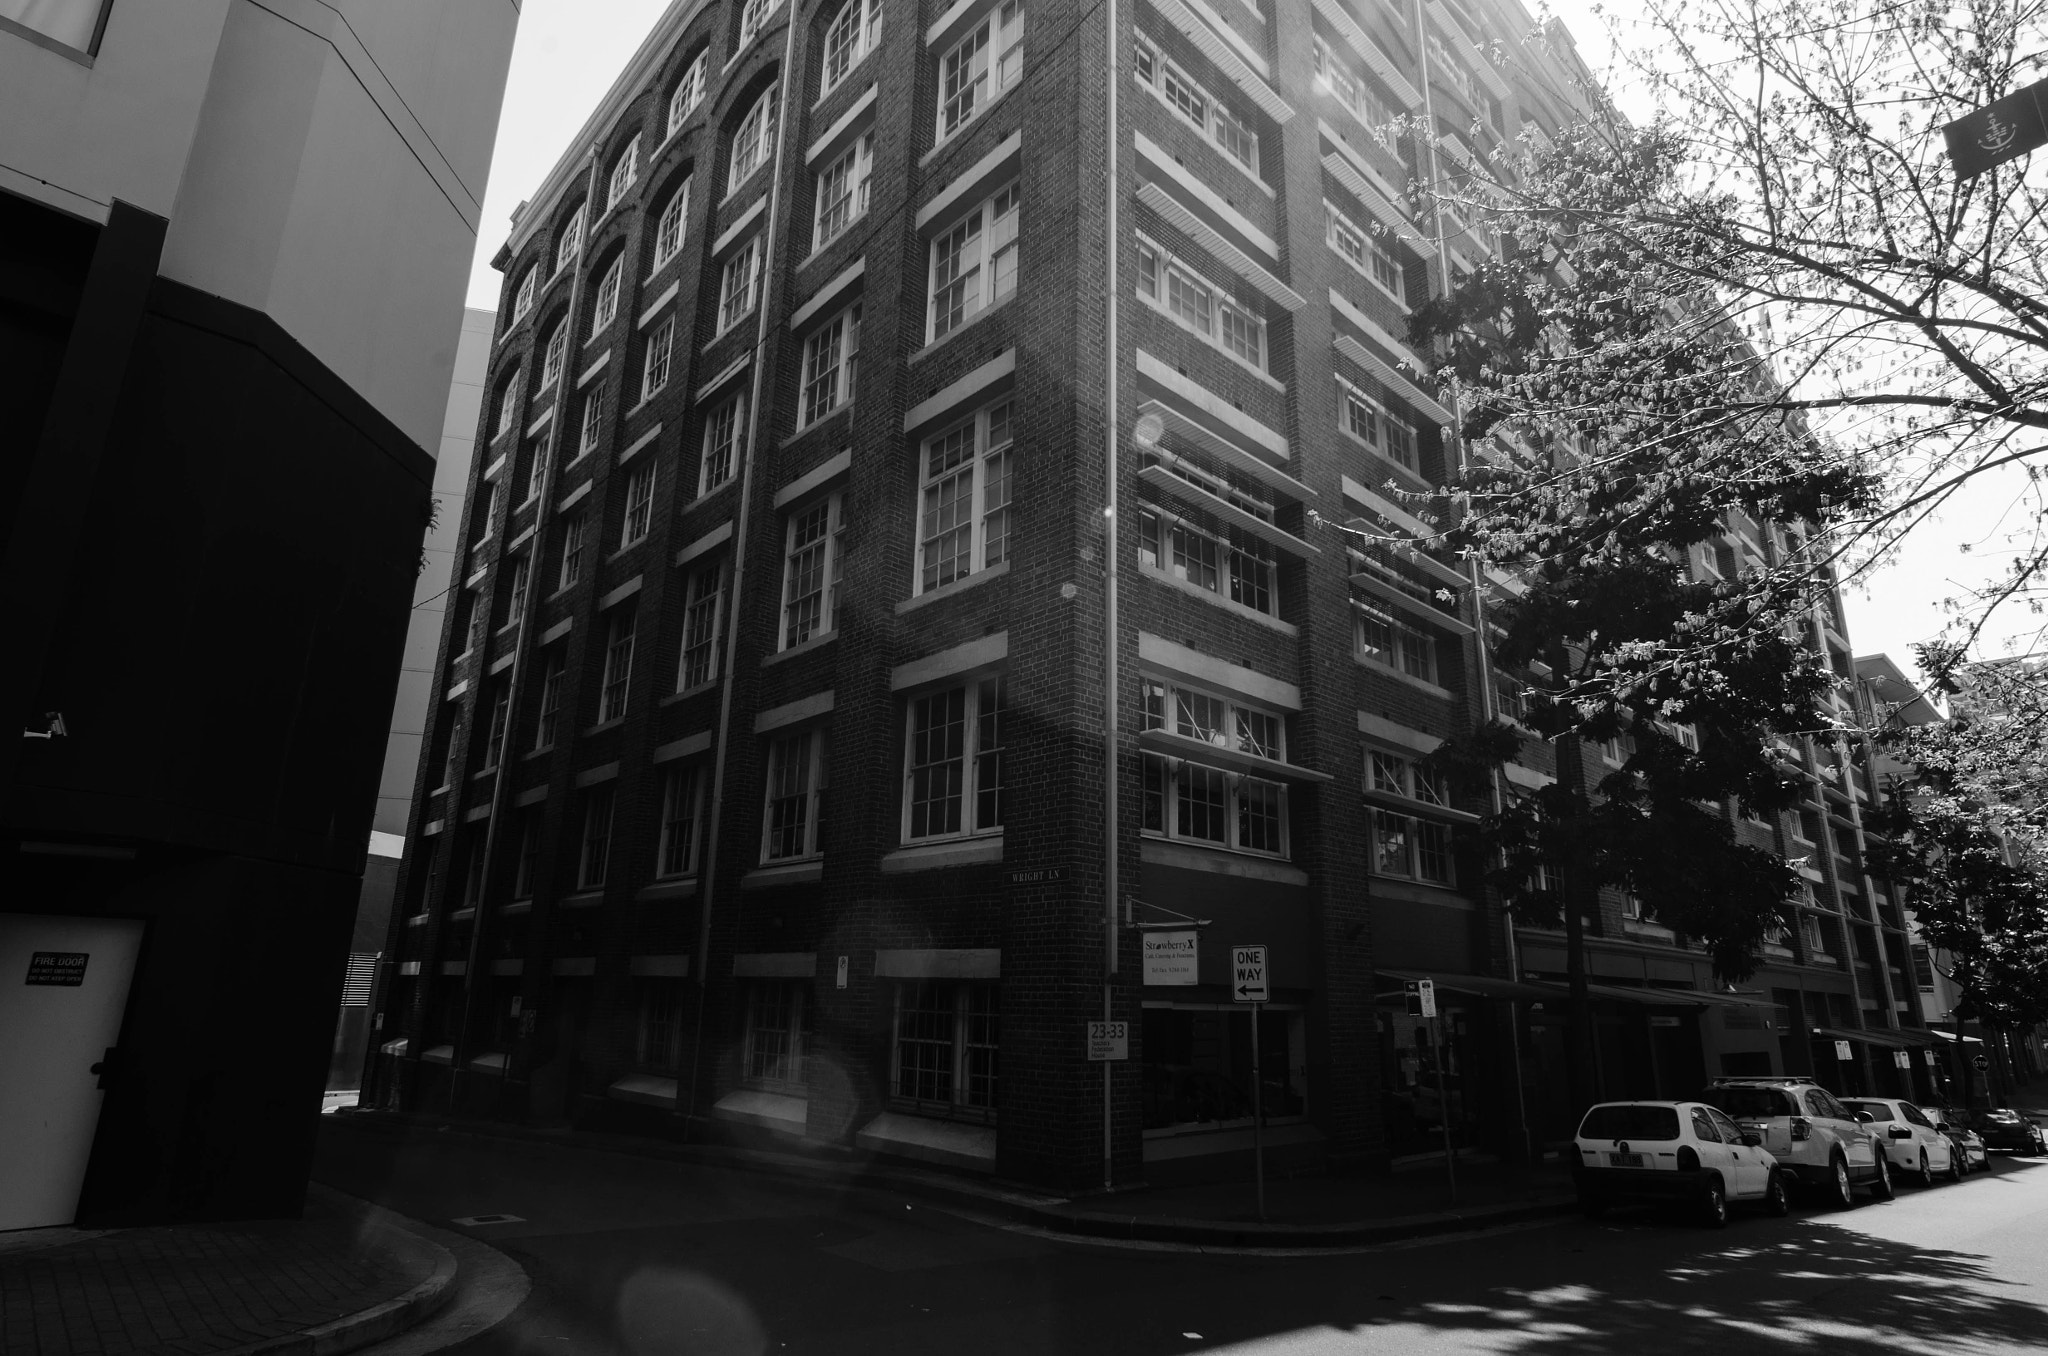 Photograph Surry Hills buildings by Brett Lynch on 500px